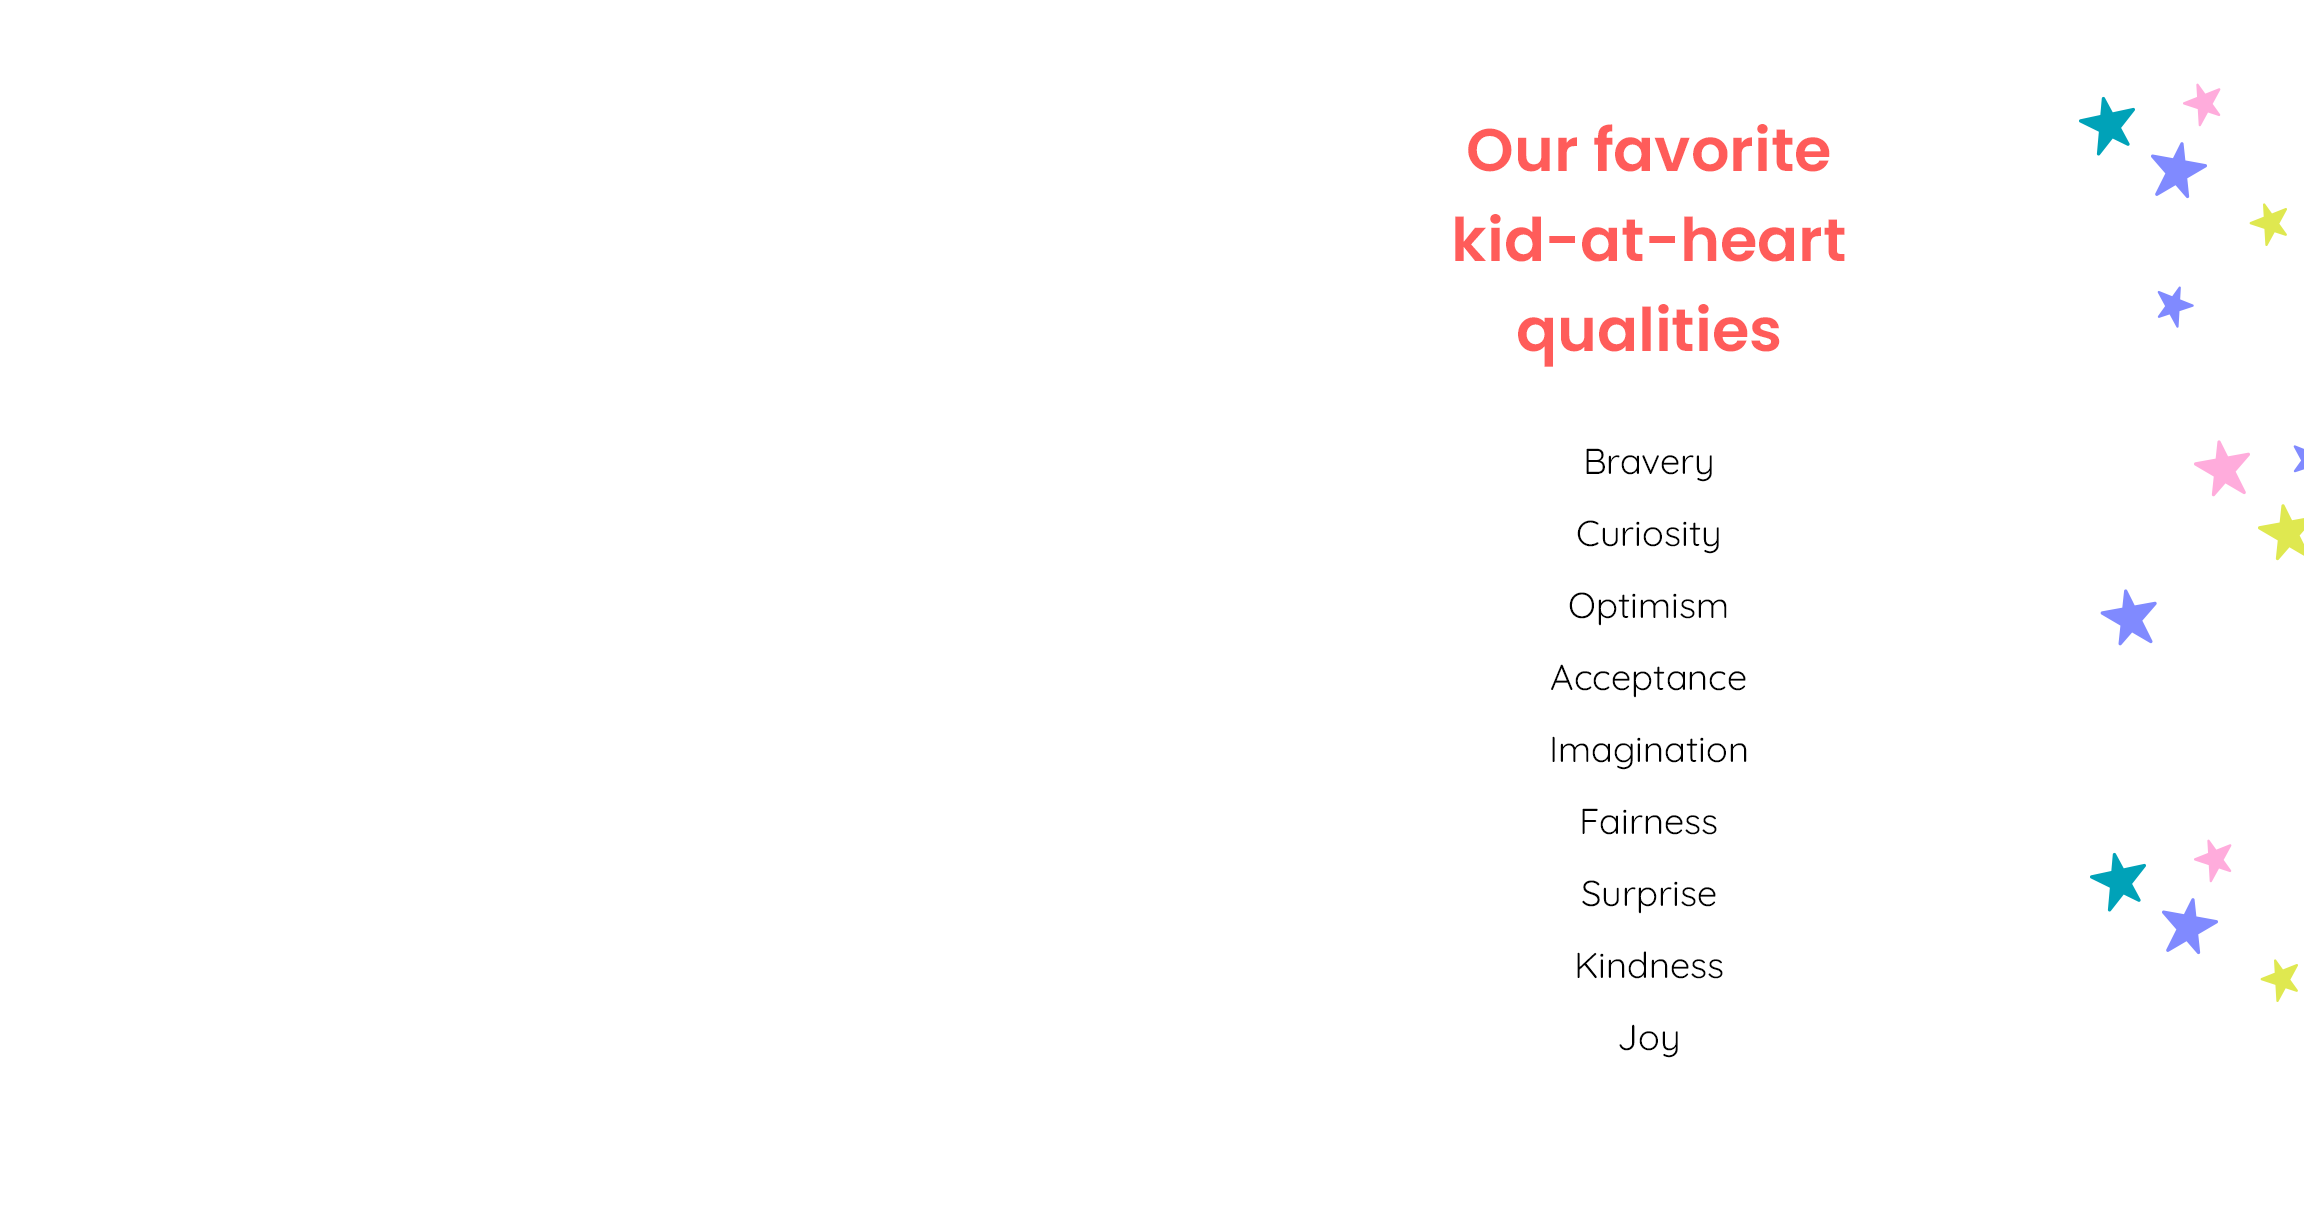 Our favorite kid-at-heart qualities